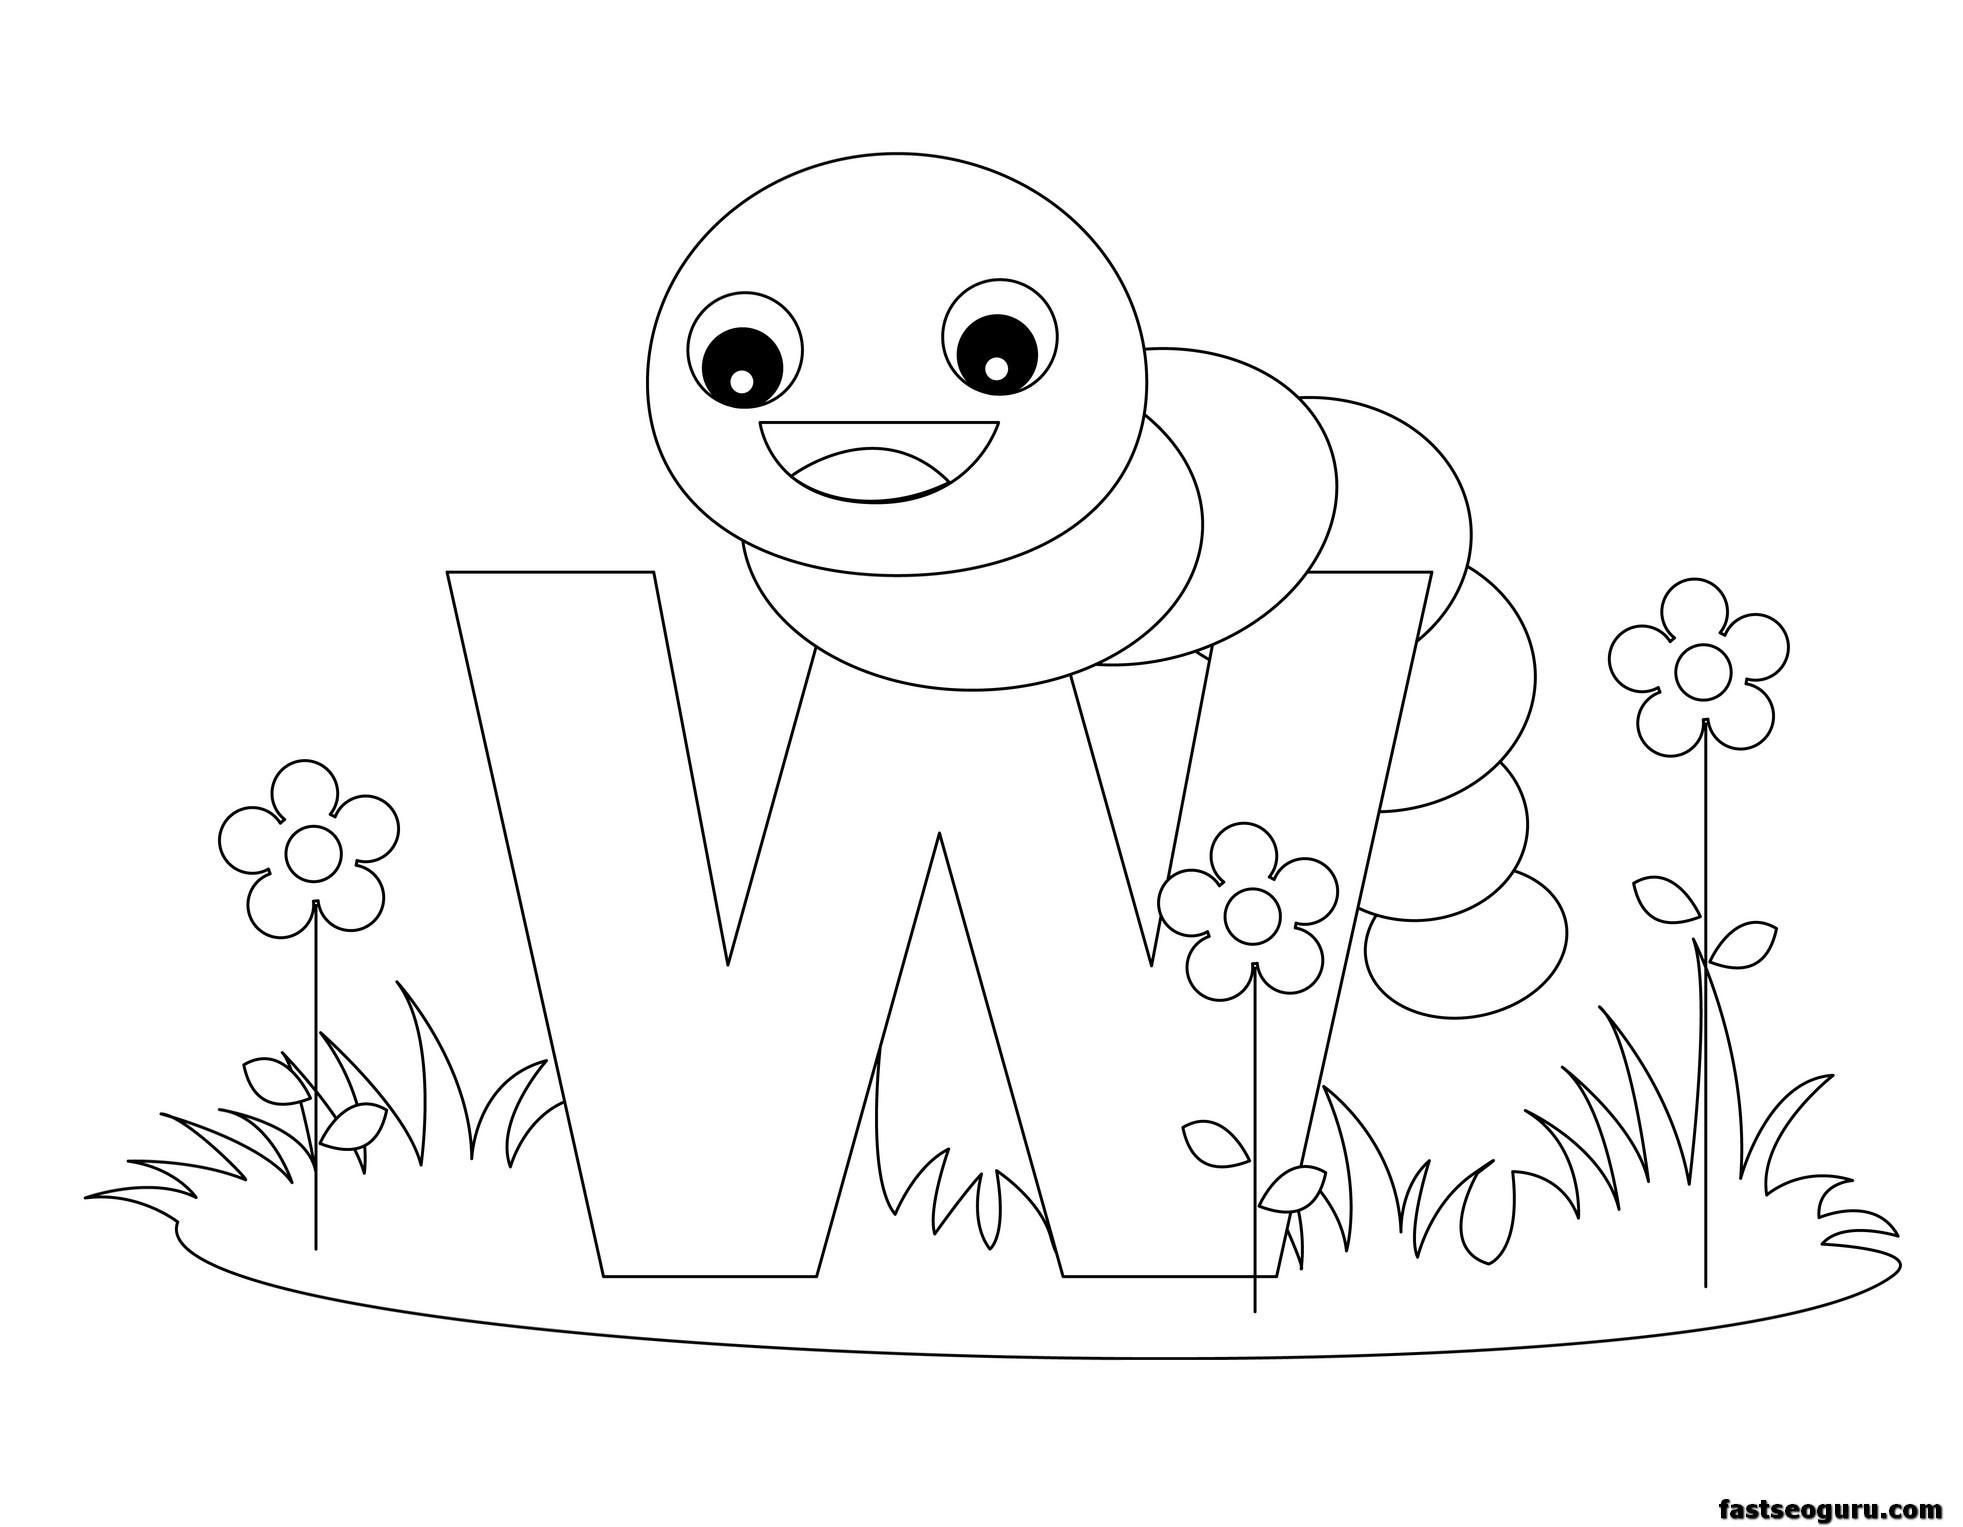 16 Letter Y Coloring Pages Free For Preschool Alphabet Coloring Pages Coloring Worksheets For Kindergarten Coloring Pages For Kids